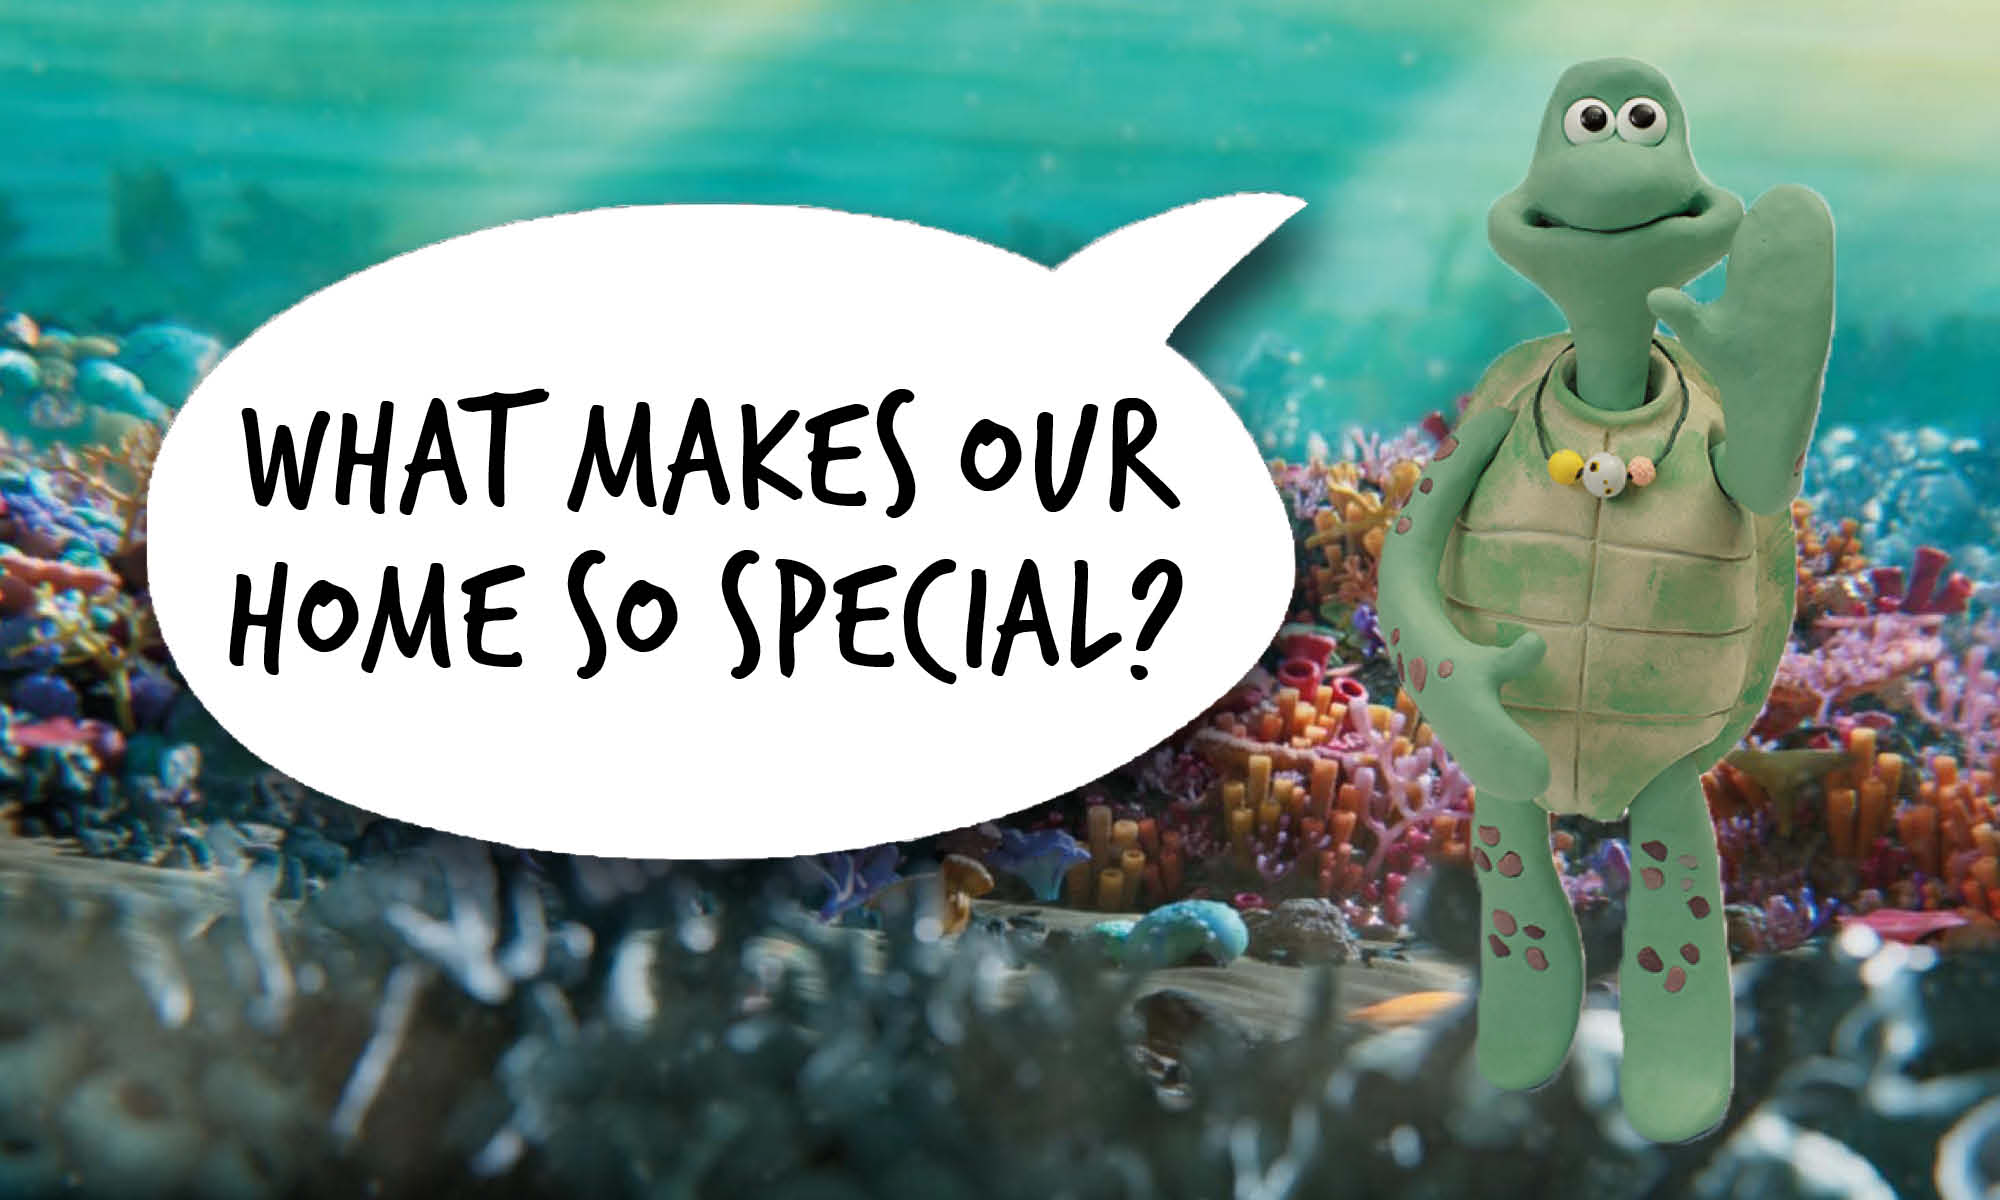 Adult female cartoon turtle waves at the camera. Speech bubble reads 'What makes our home so special?'